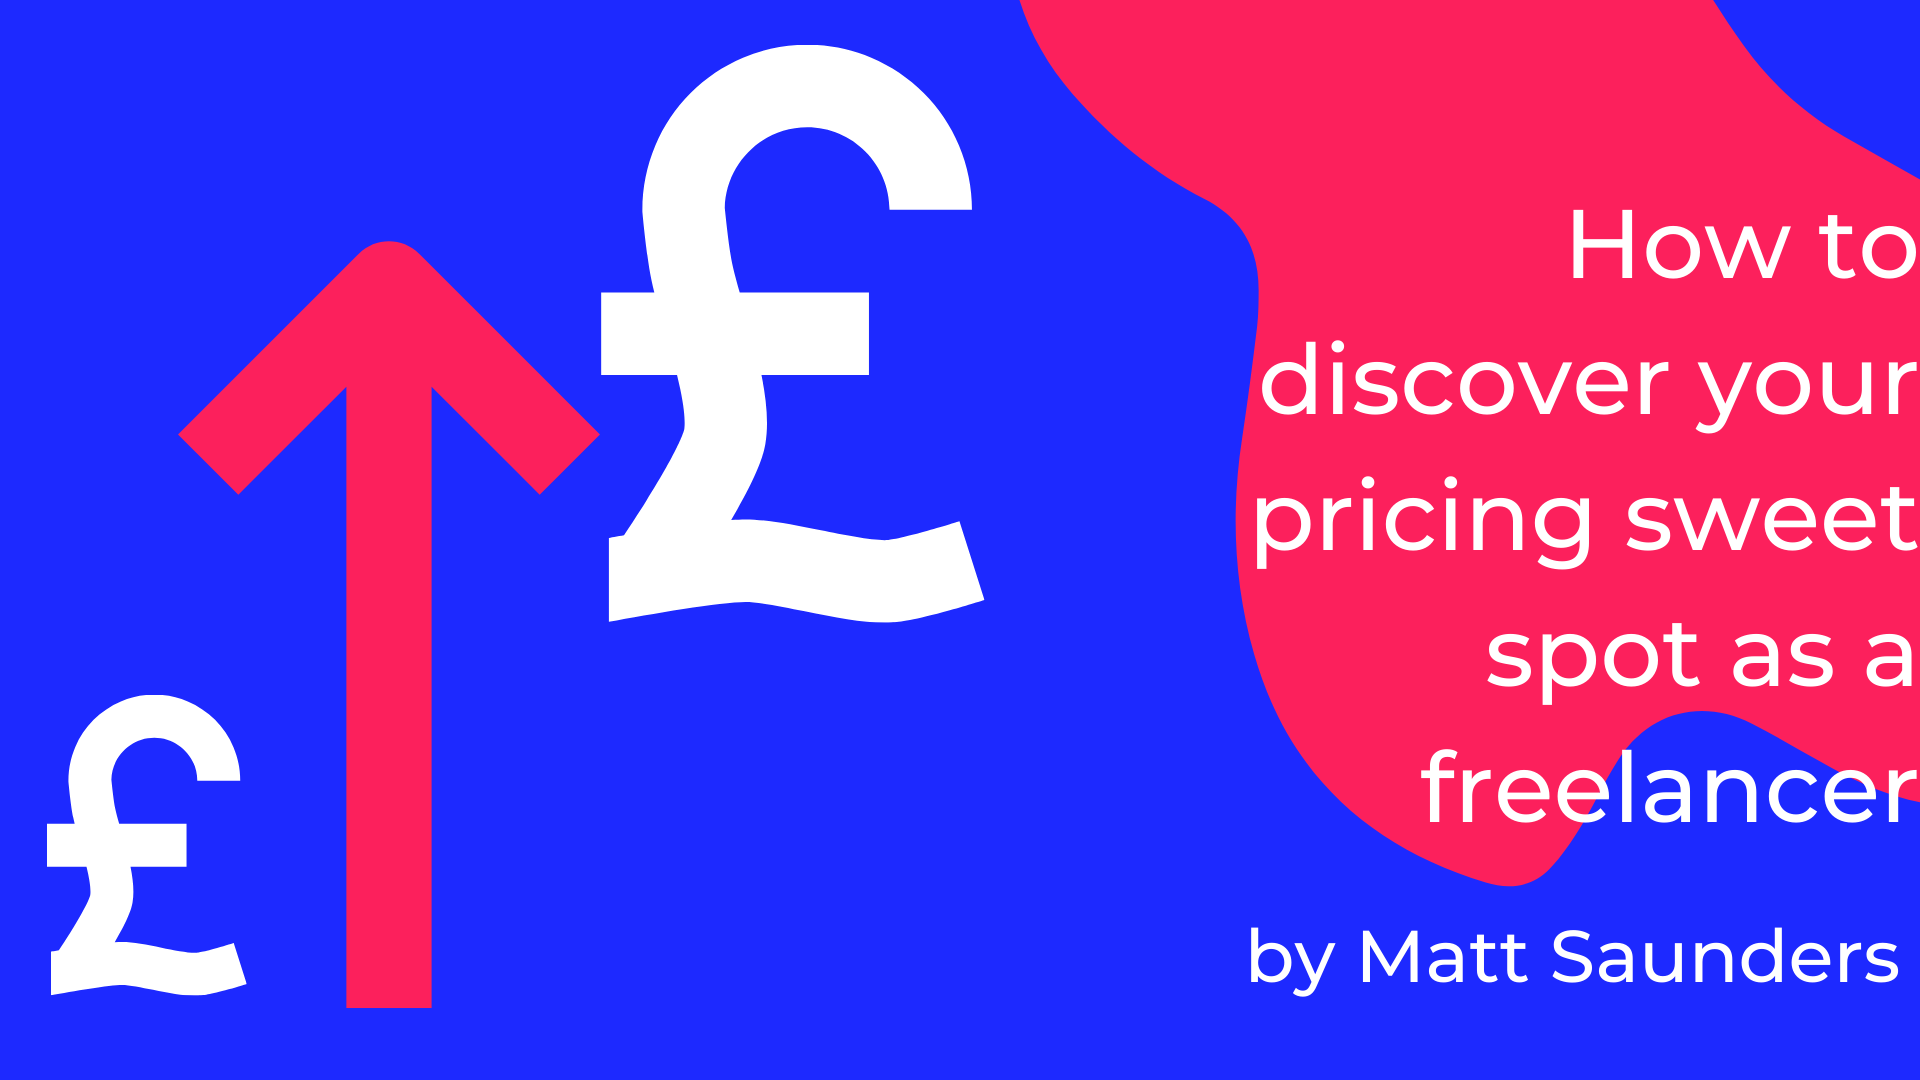 How to discover your pricing sweet spot as a freelancer